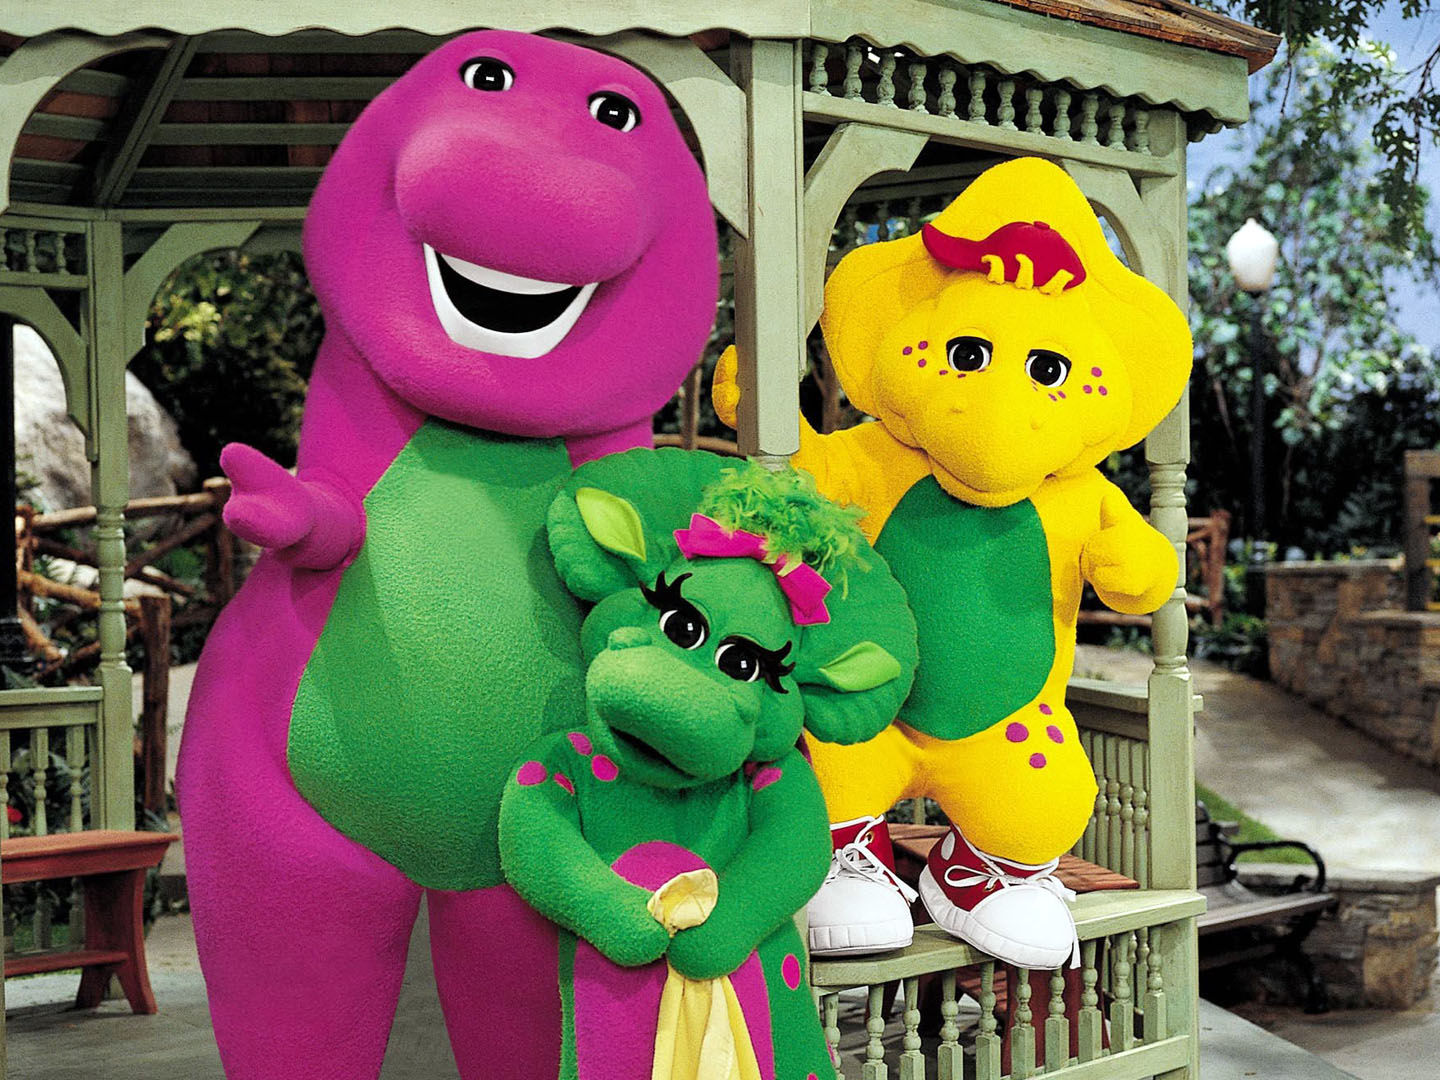 barney and friends baby bop lol kickin it old skool pinterest